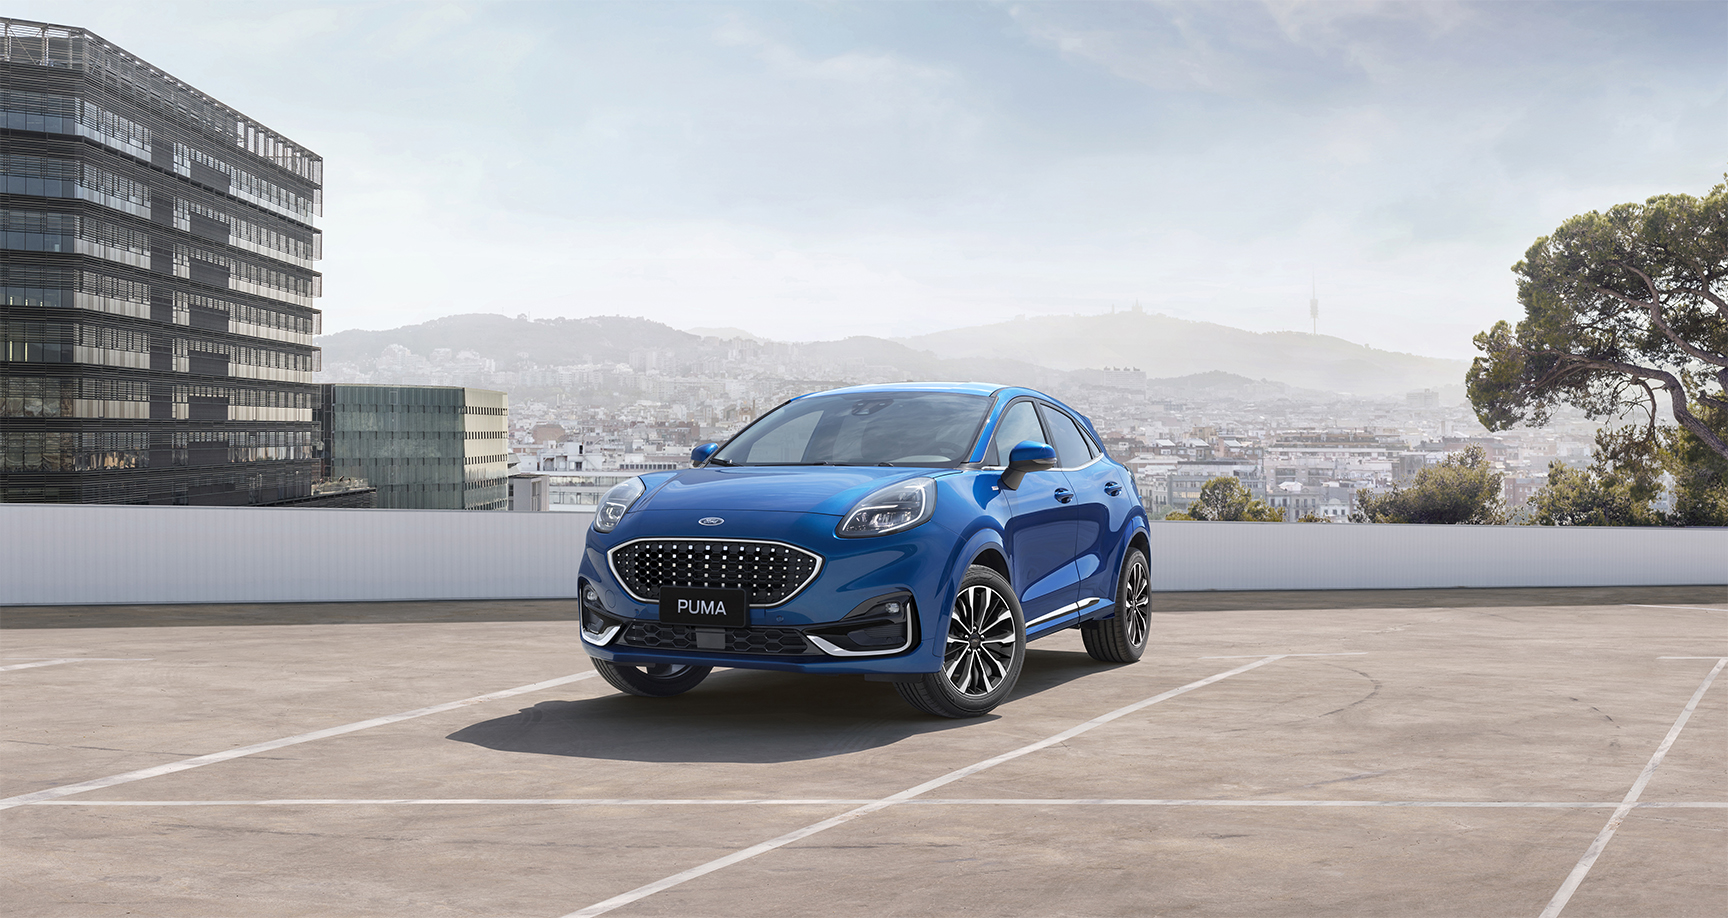 Ford's launches its a new compact Puma SUV with a series of 'Desk Drive' virtual tours.